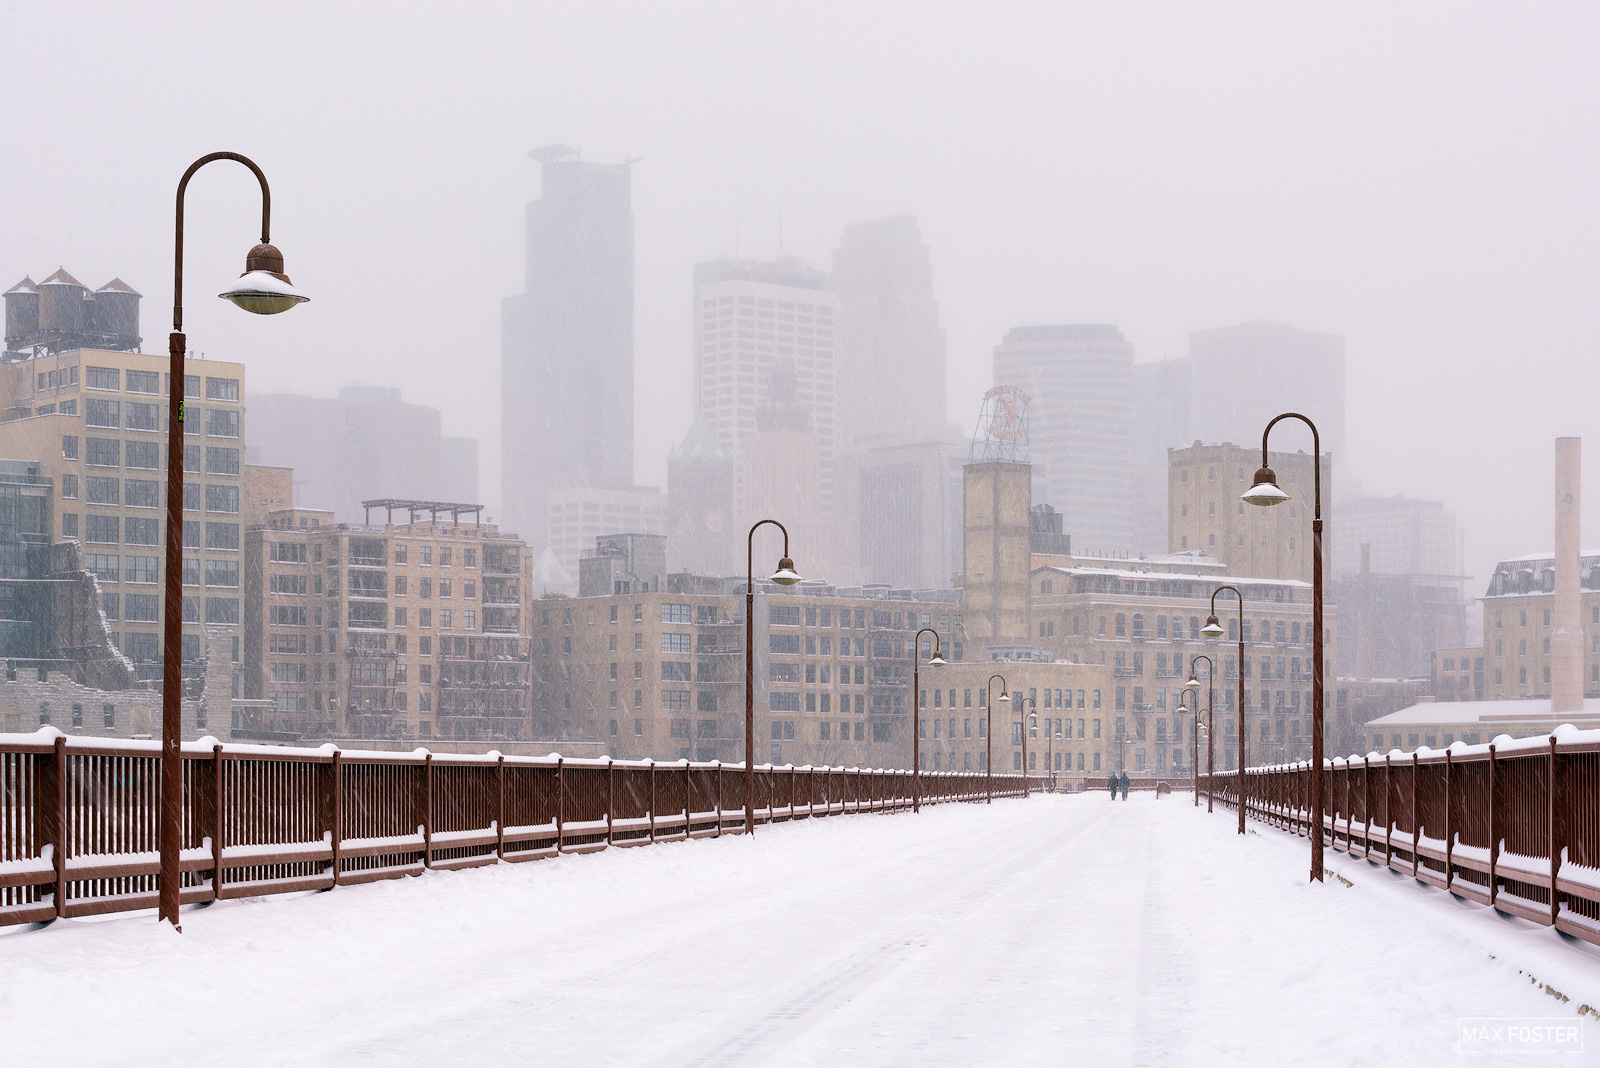 Minneapolis, Minnesota, Snowy Stone Arch, Stone Arch Bridge, Saint Anthony Falls, photo